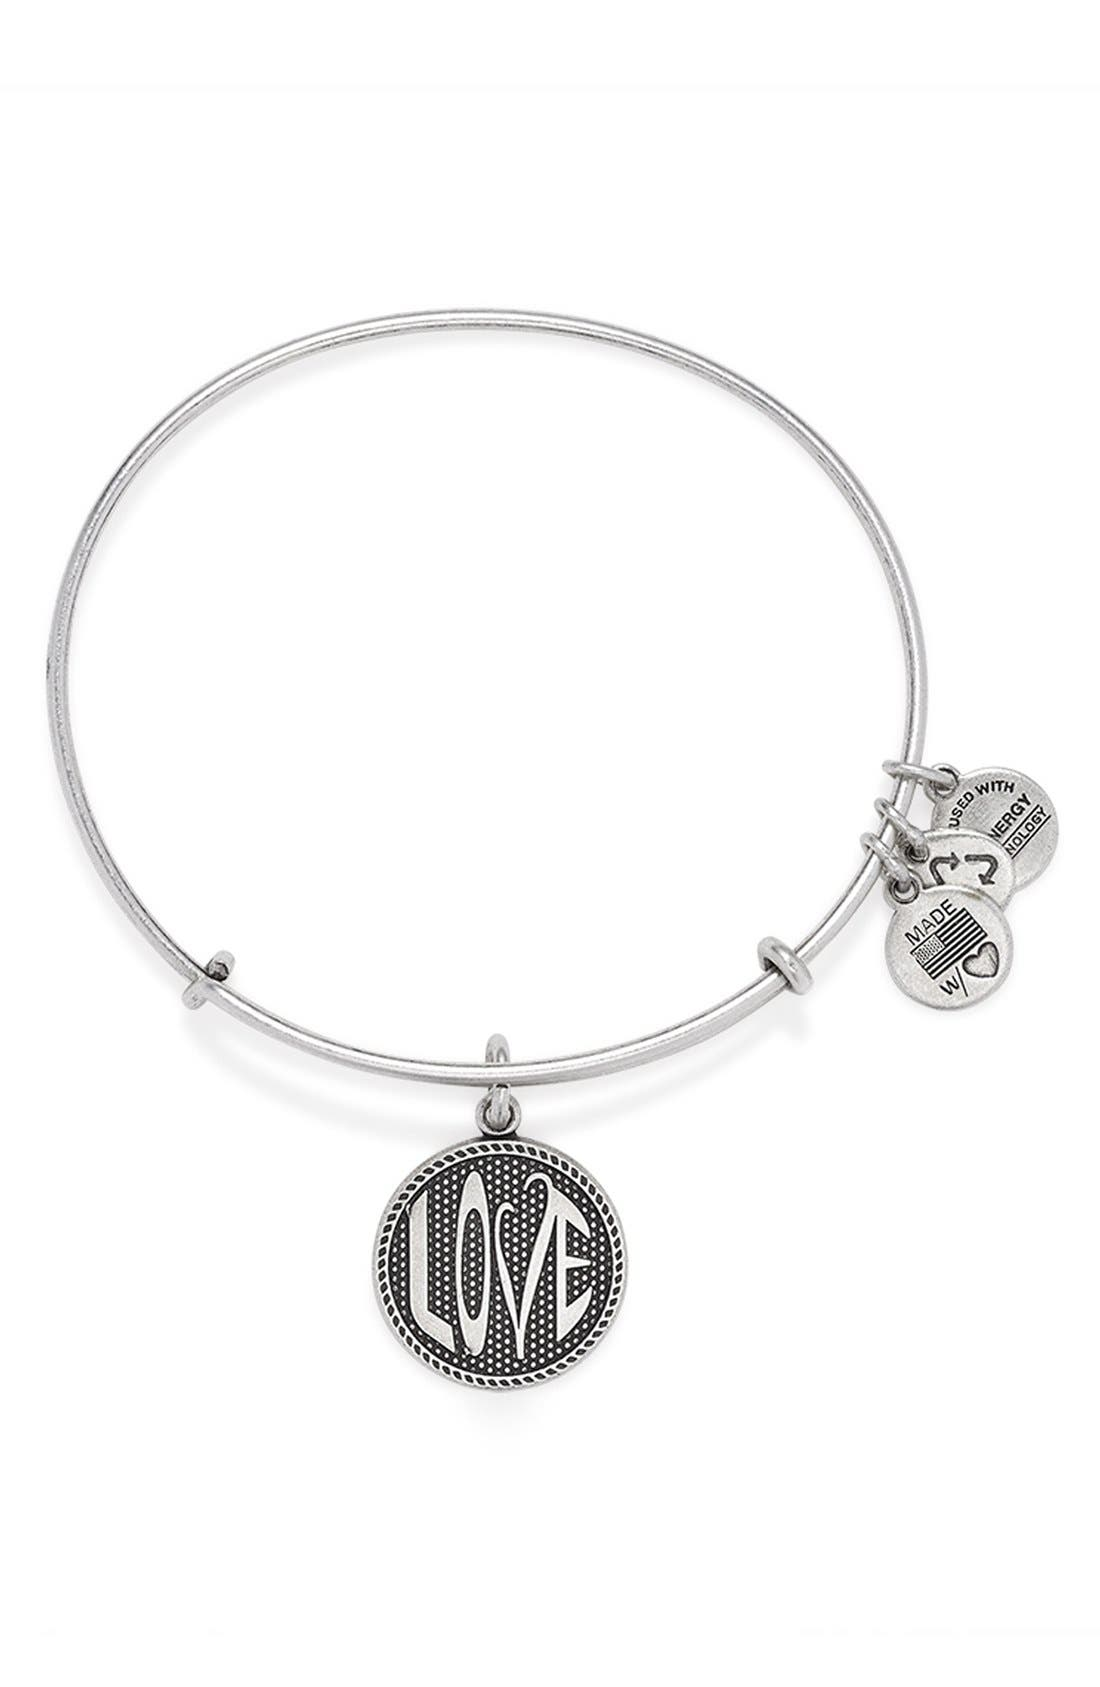 Alternate Image 1 Selected - Alex and Ani 'Open Love' Expandable Wire Bangle